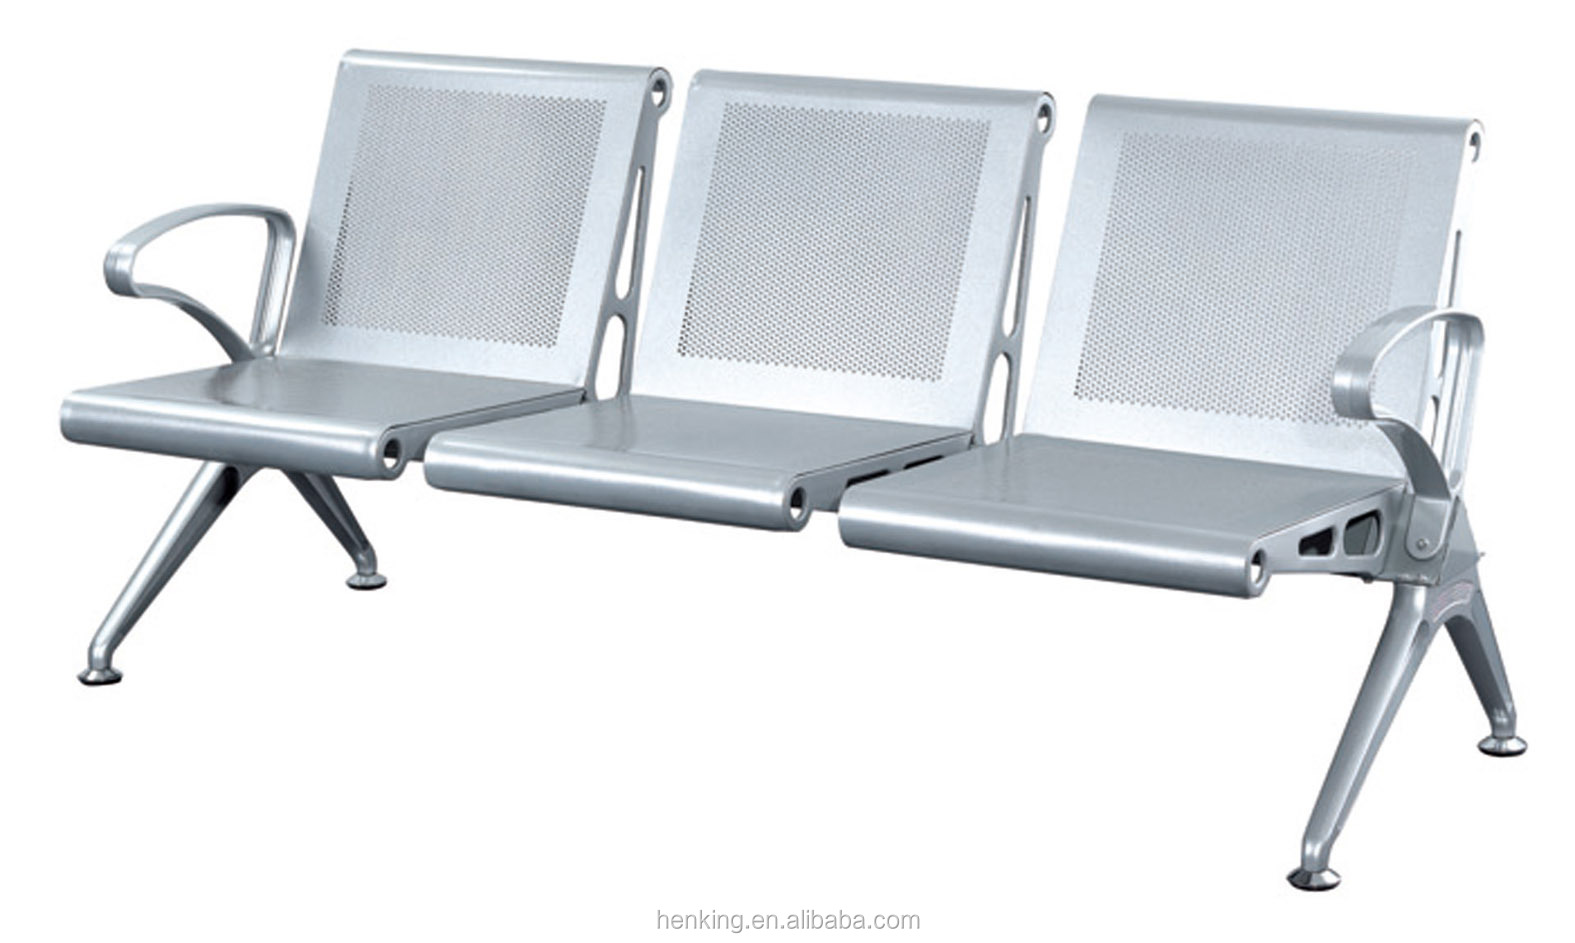 Henking Public Metal Seating Bench Airport Chairs H916 3p